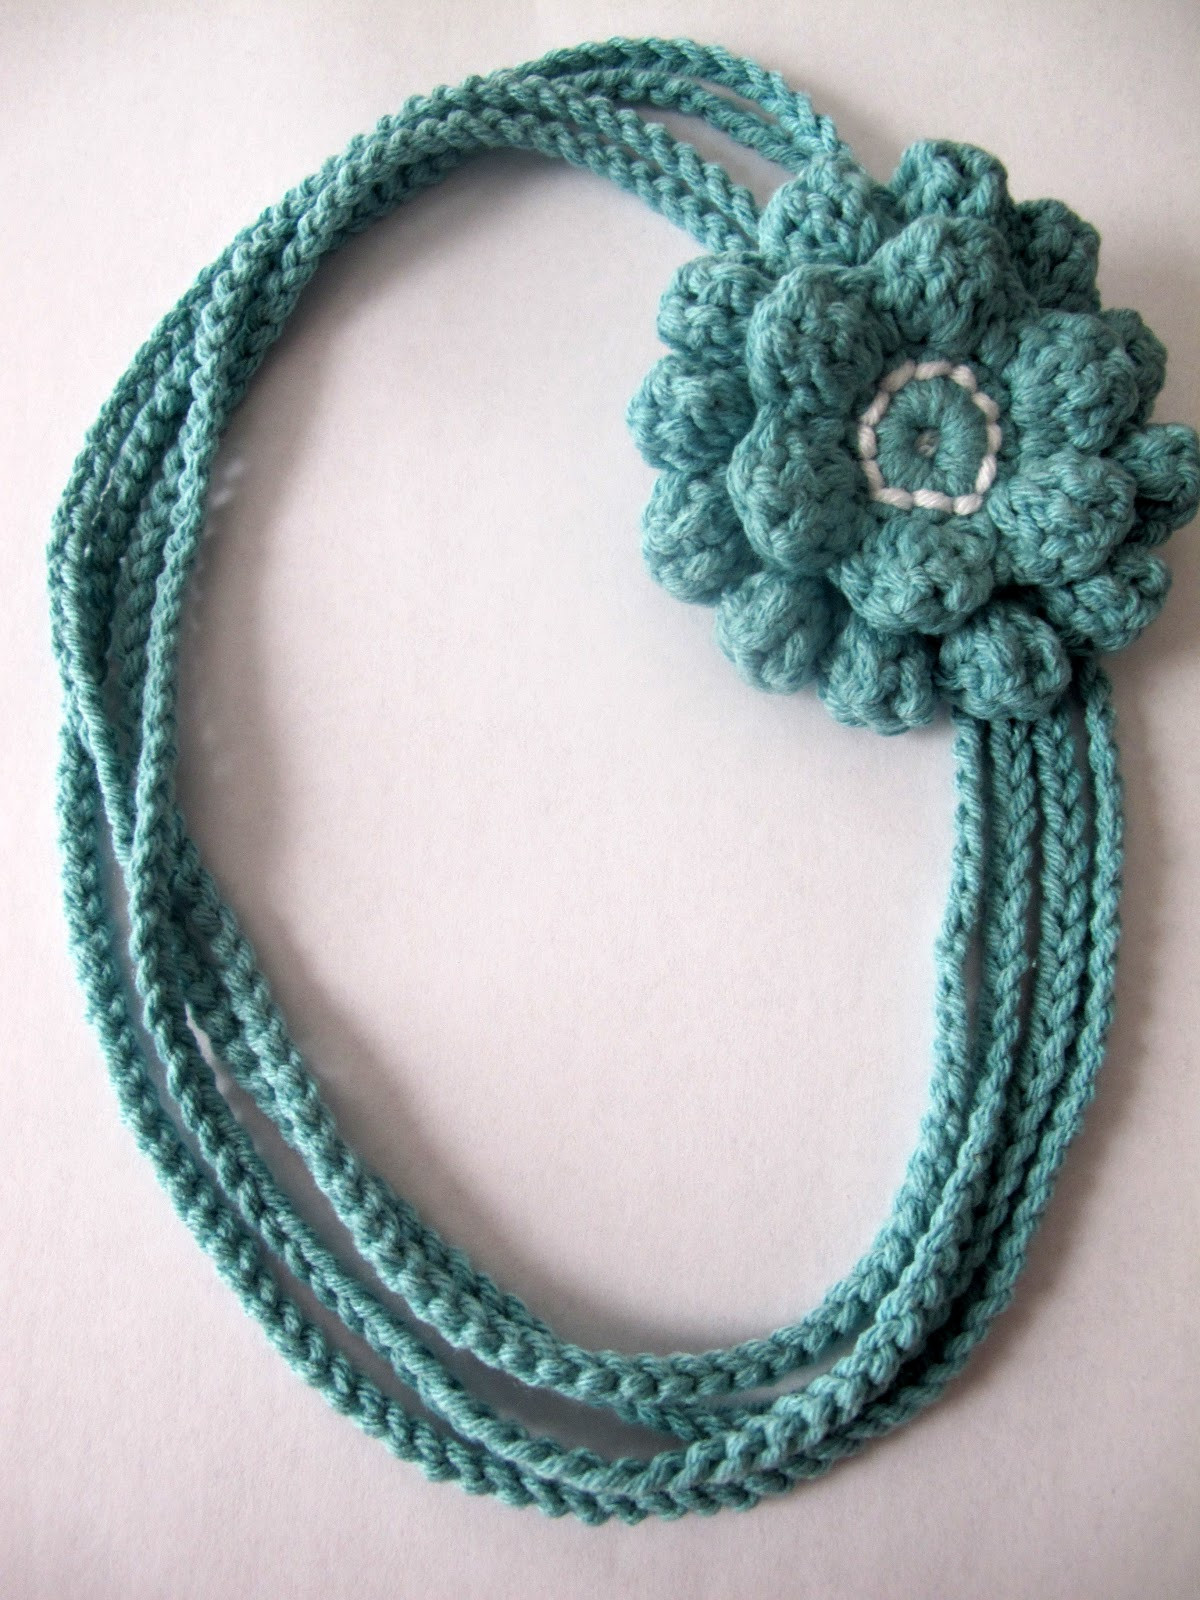 New Love City Get Hooked 4 the Crochet Chain Necklace Crochet Jewlery Patterns Of Fresh 48 Models Crochet Jewlery Patterns